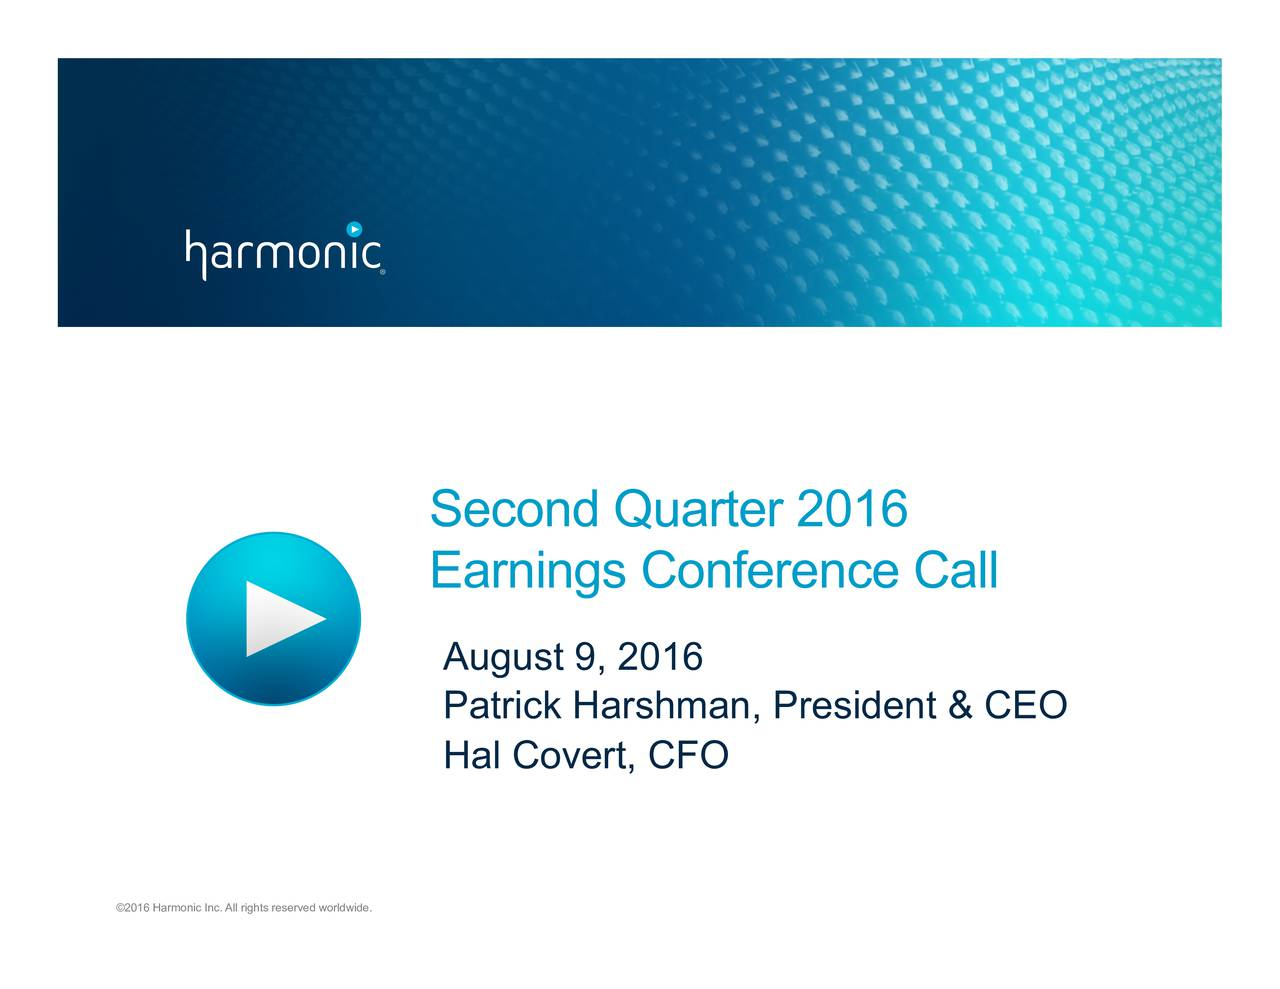 Earnings Conference Call August 9, 2016 Patrick Harshman, President & CEO Hal Covert, CFO 2016 Harmonic Inc. All rights reserved worldwide.